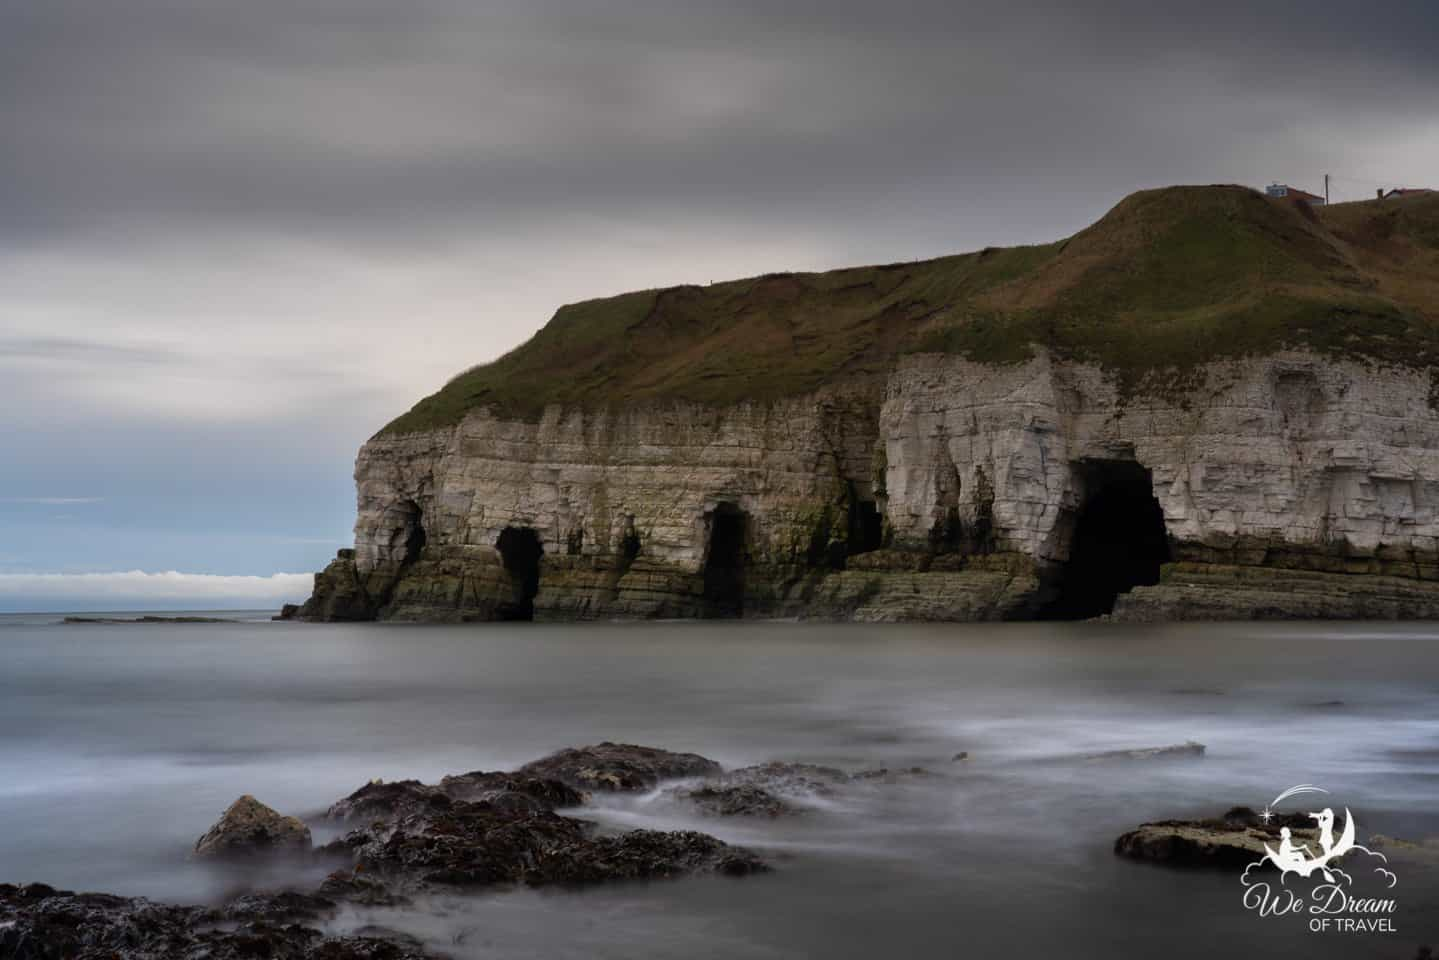 A long exposure photo of the emerging sea caves at Thornwick Bay.